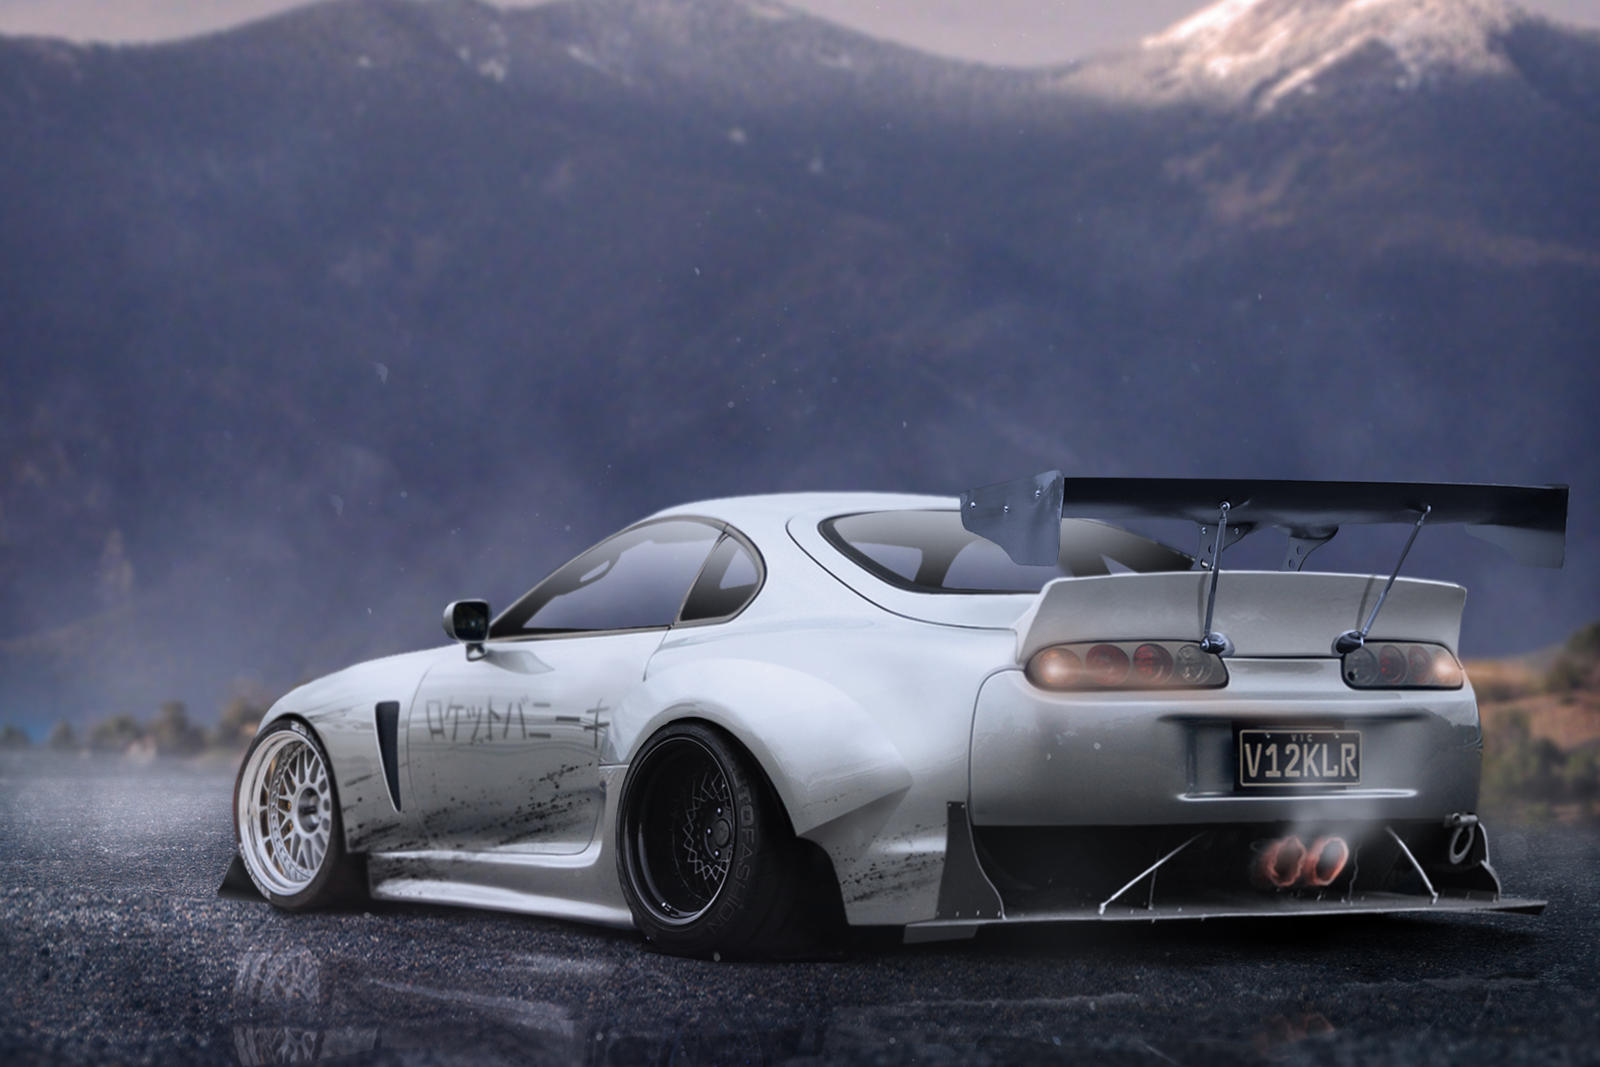 Rocket Bunny Toyota Supra By Mattmcquiggan On Deviantart